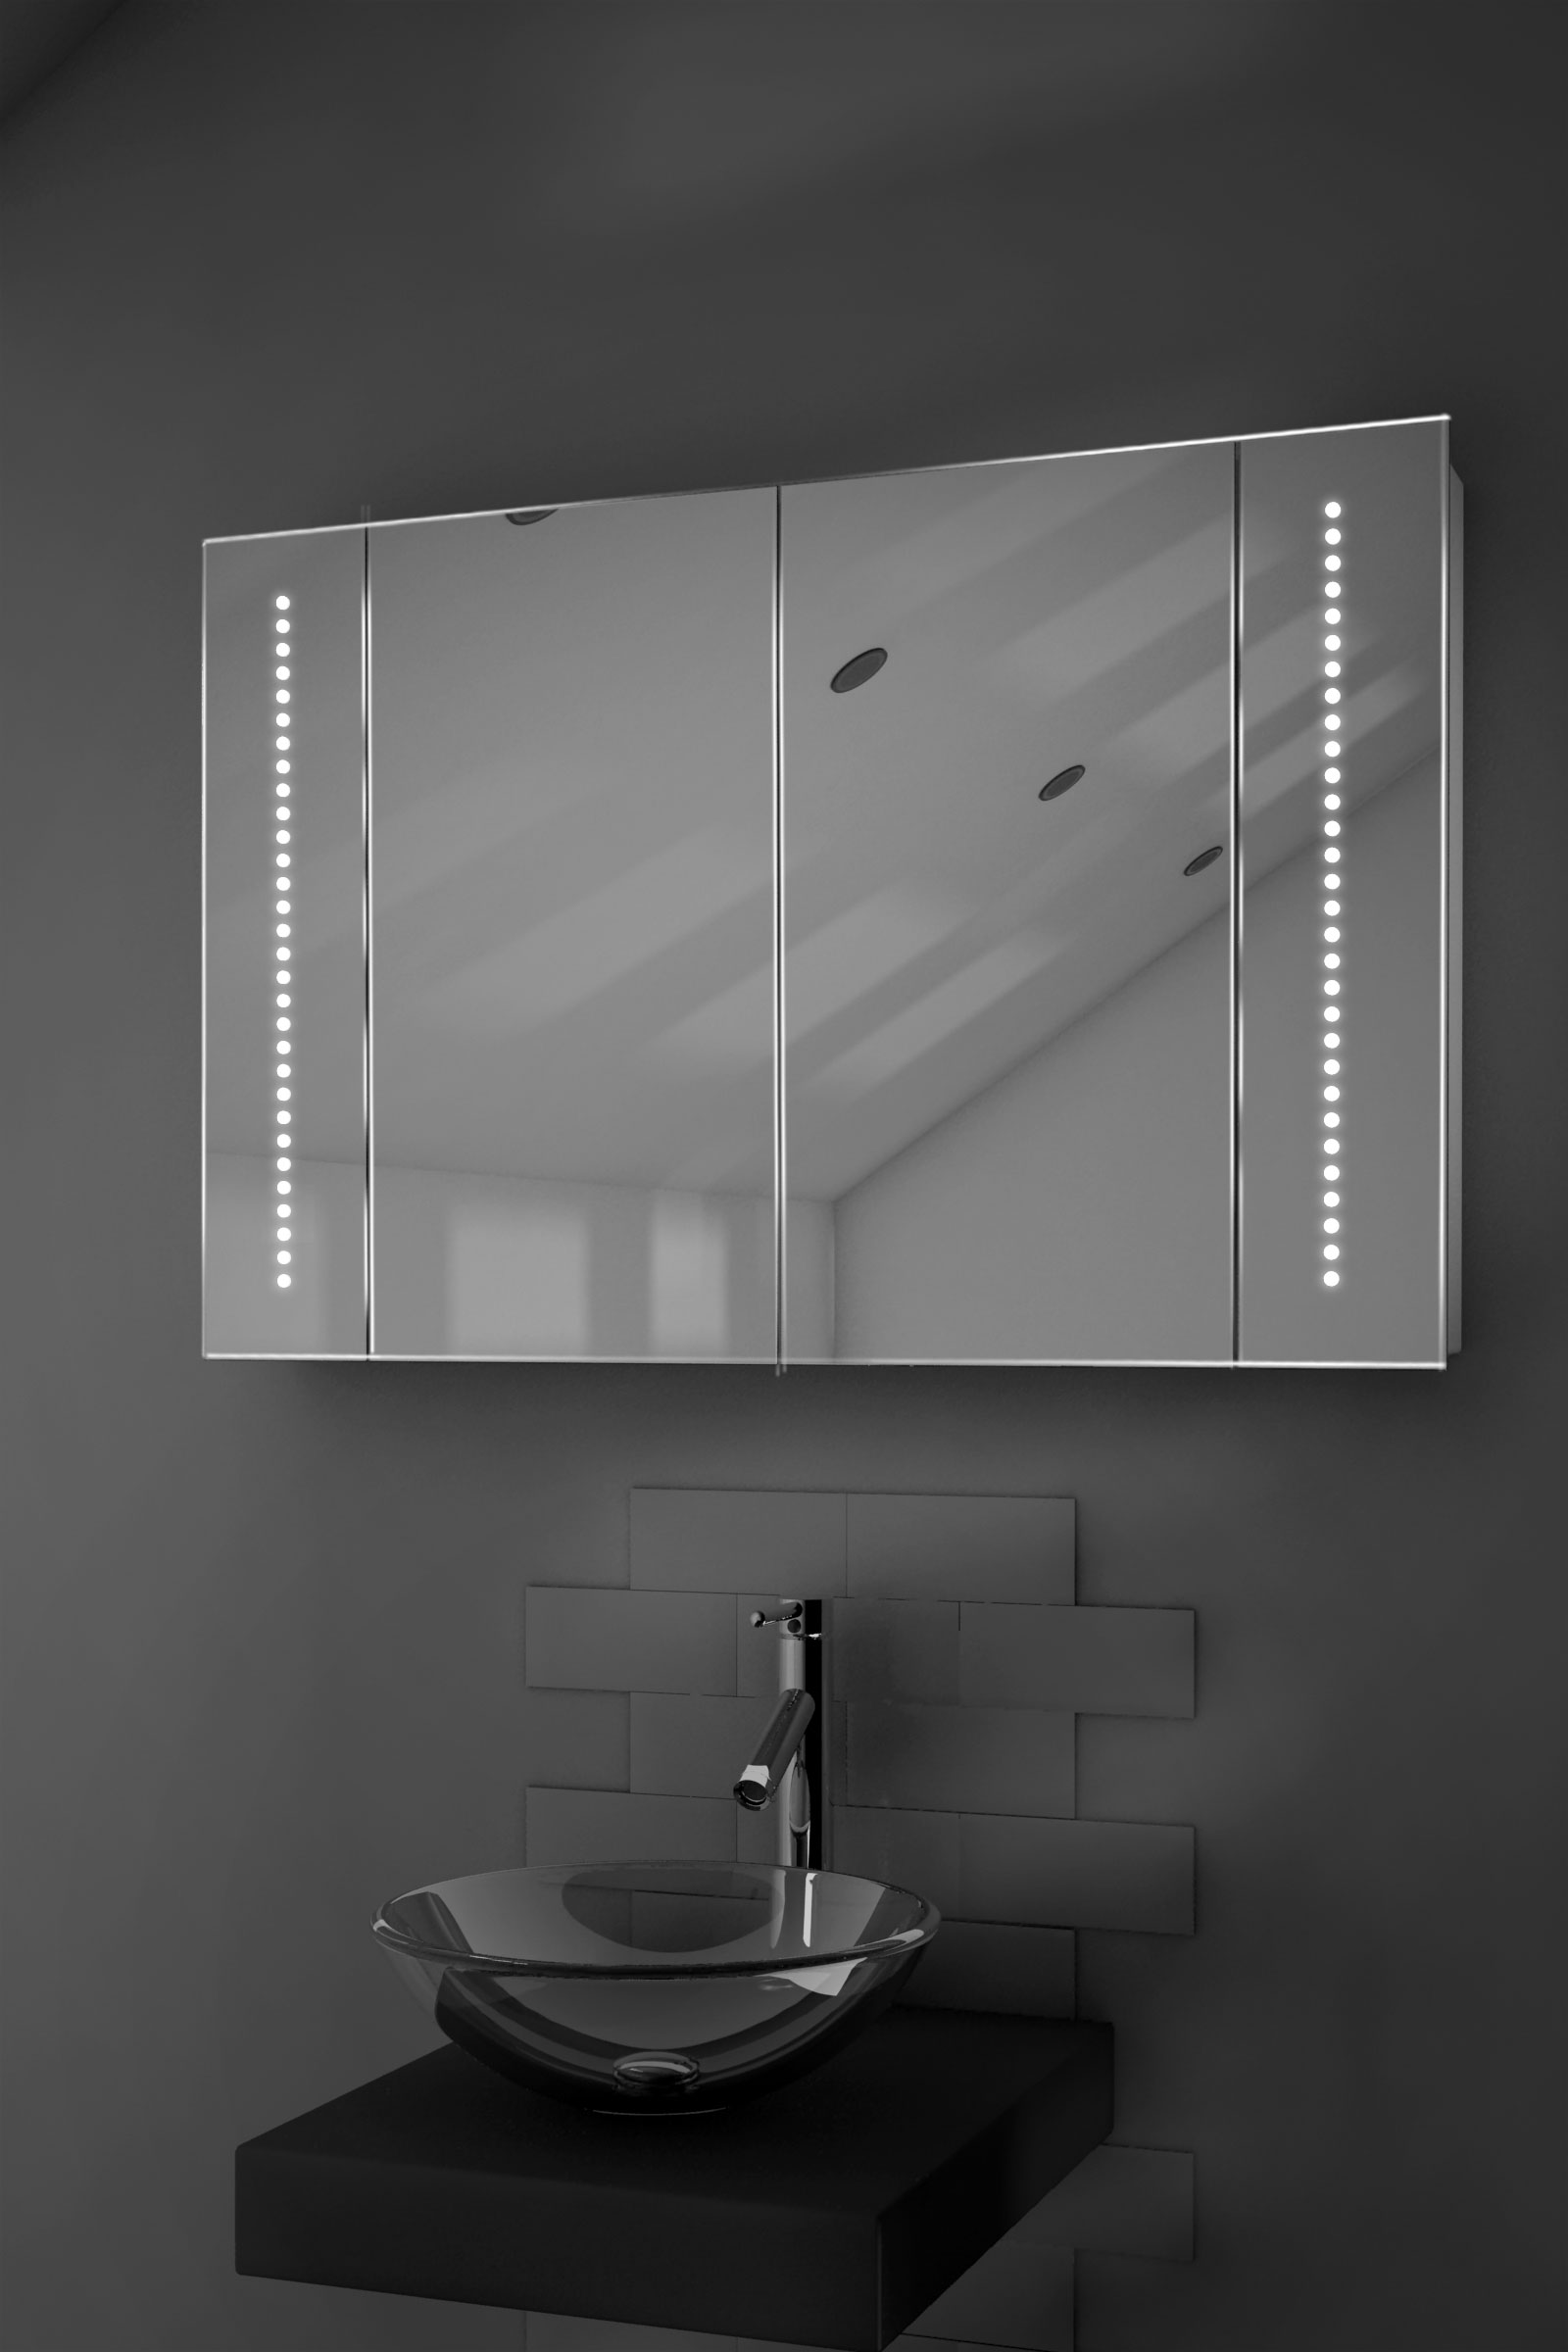 Star LED Illuminated Bathroom Mirror Cabinet With Sensor